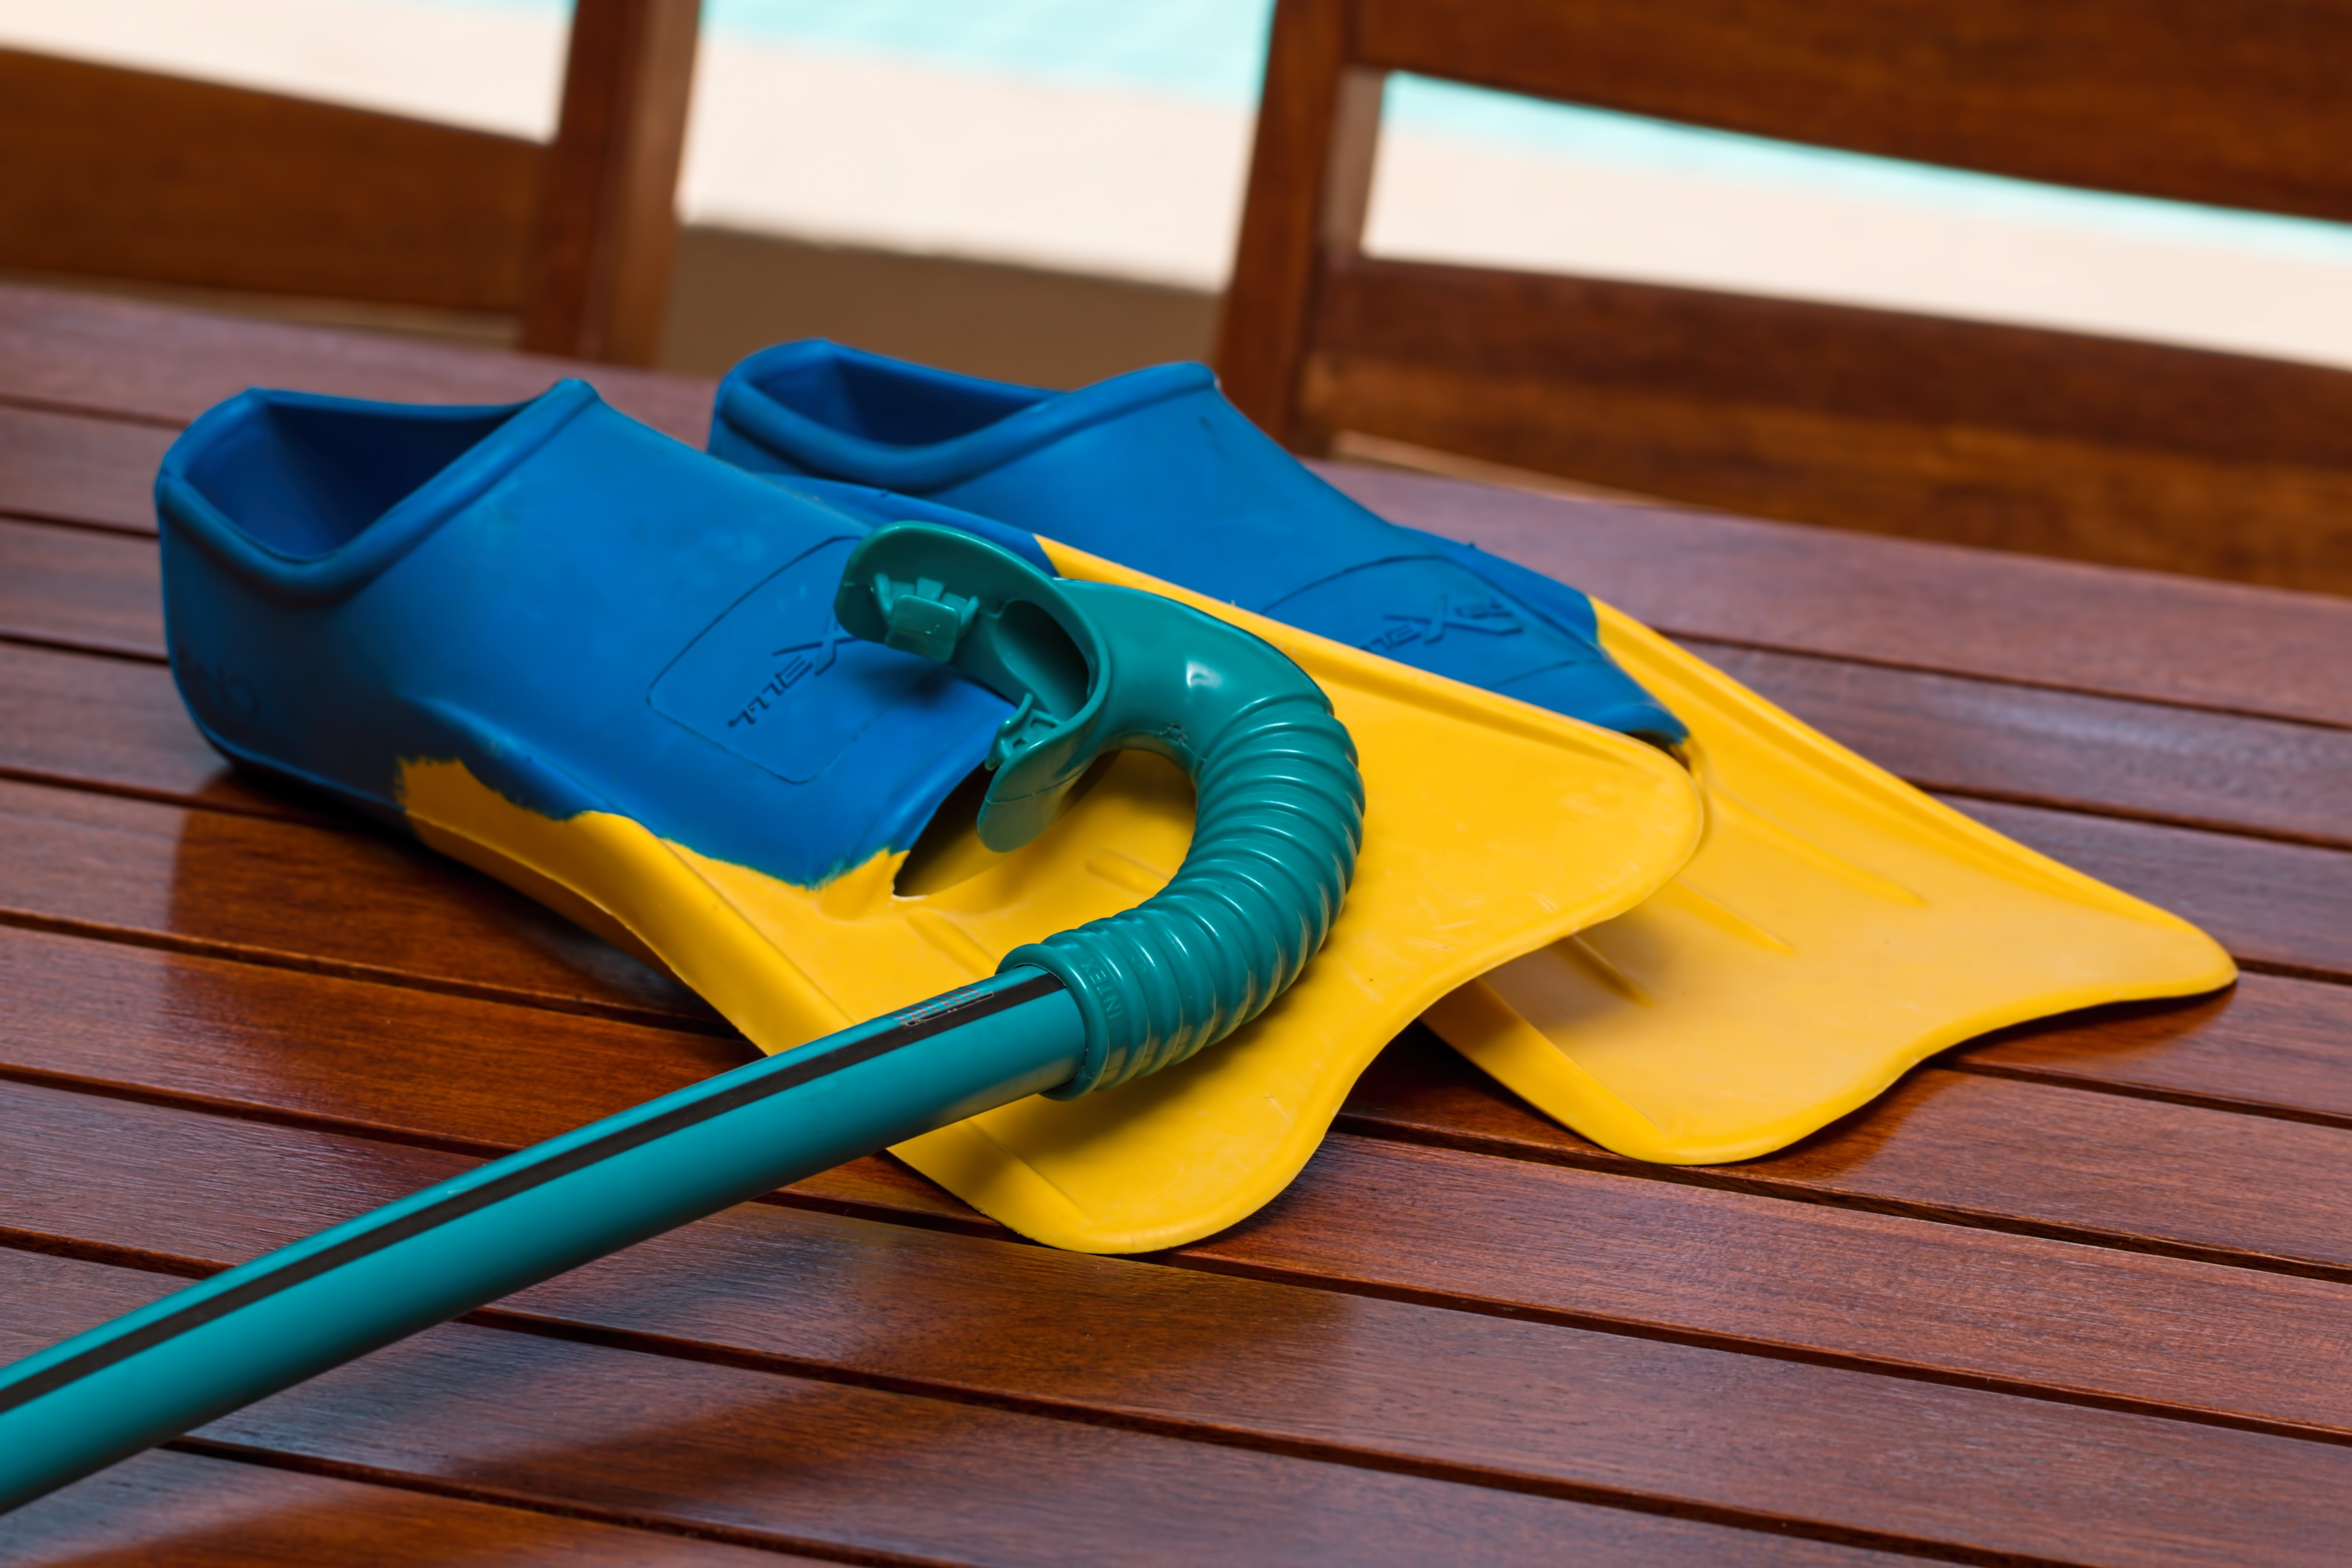 Blue and Yellow Flippers, Activity, Blur, Flippers, Plastic, HQ Photo